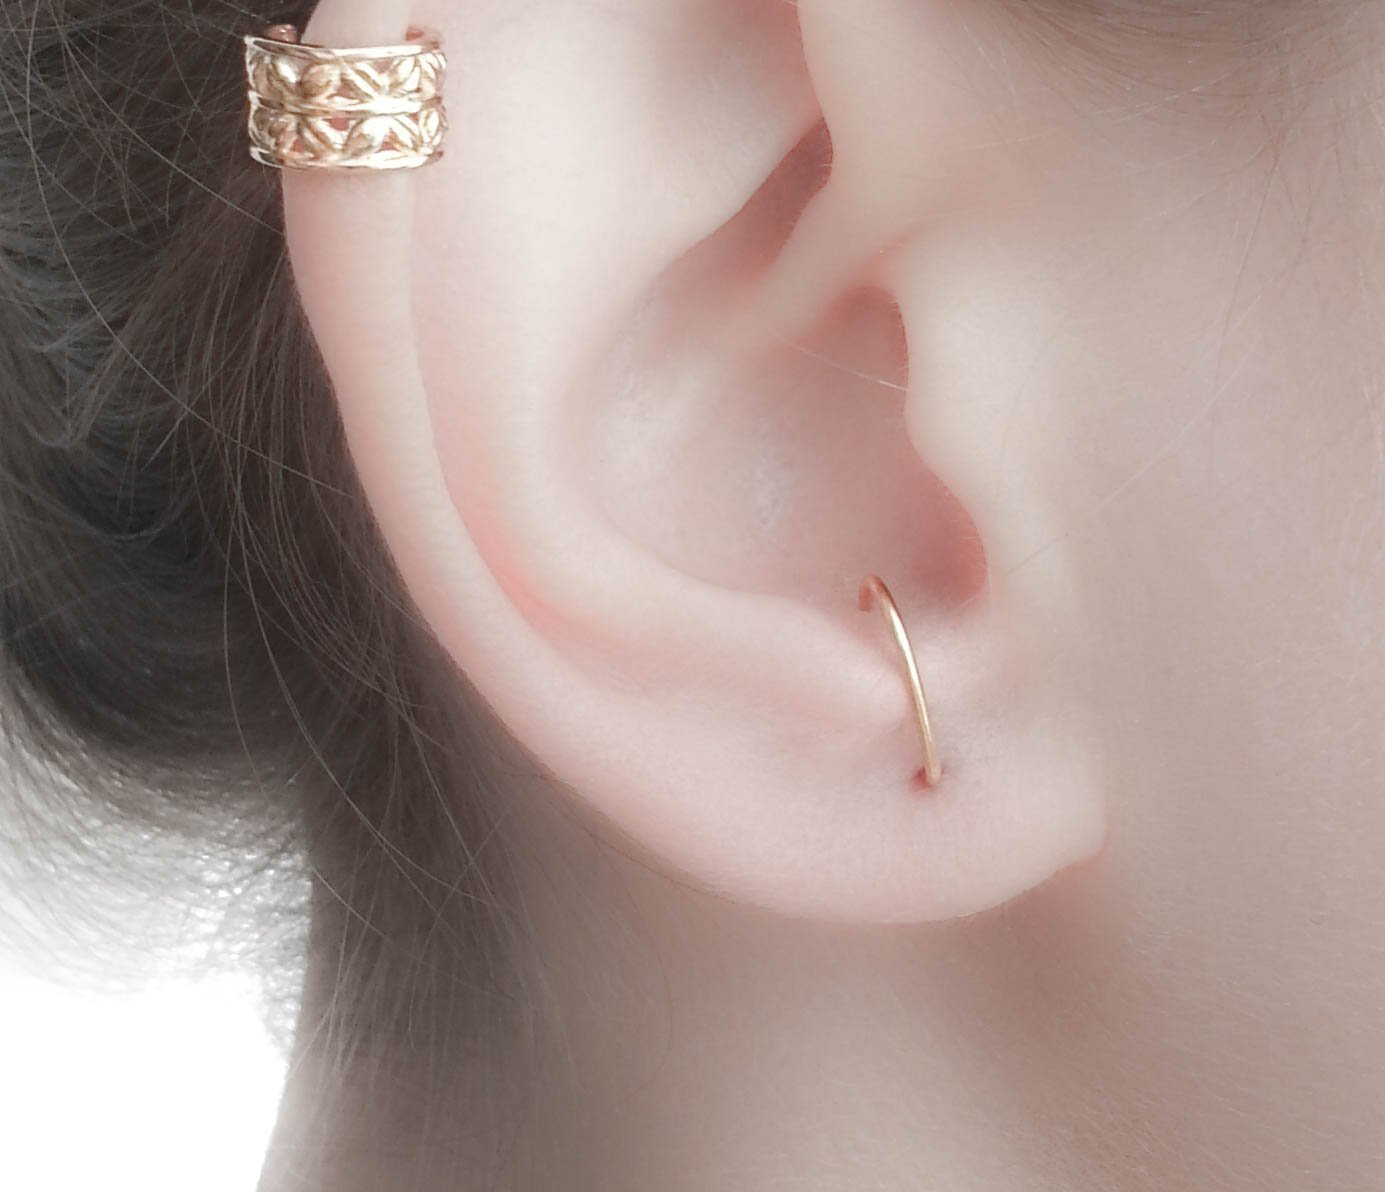 Suspender Earring Silver Suspender Earring Gold Hook Earring-Suspender Hook Earring-Gold Stud Earring-celebrity earrings